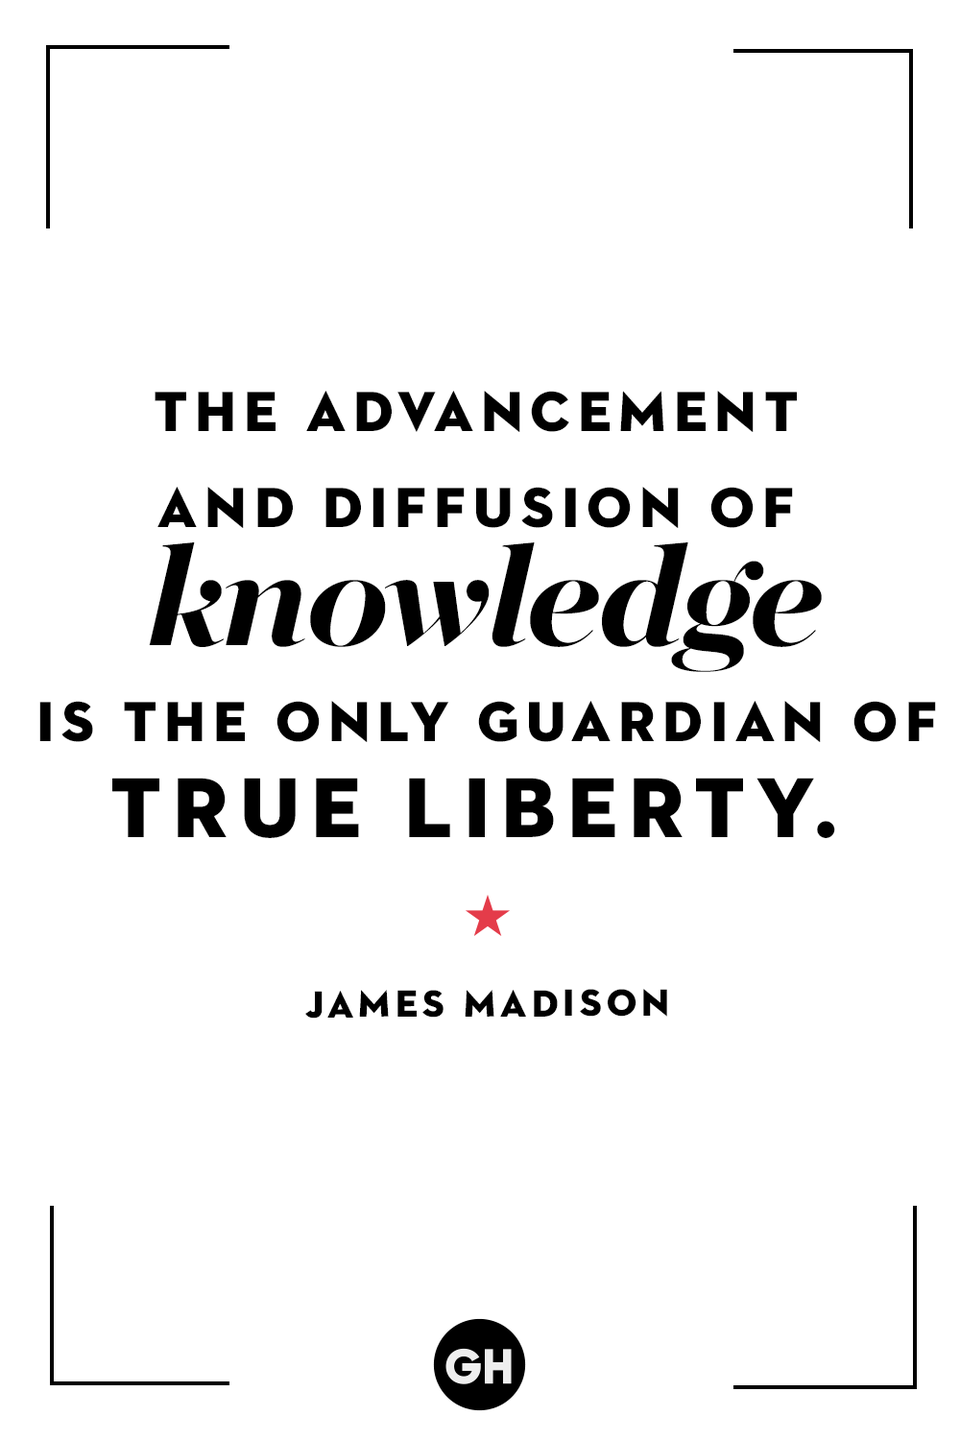 <p>The advancement and diffusion of knowledge is the only guardian of true liberty.</p>